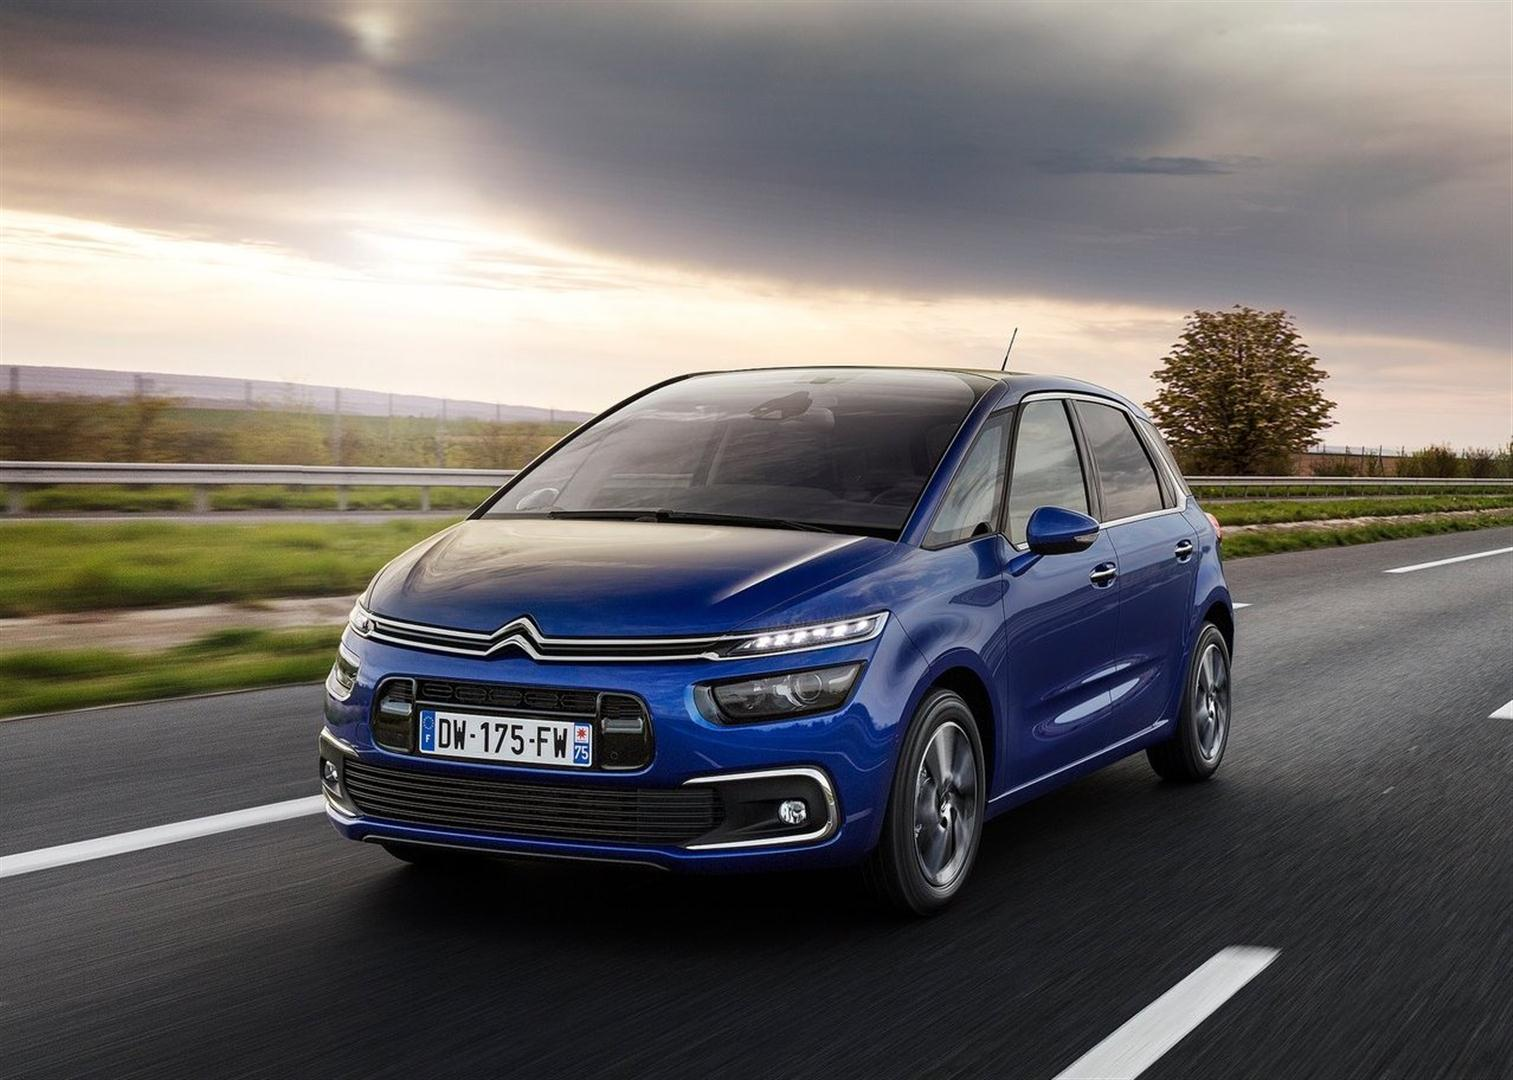 2018 Citroen C4 Picasso reviews